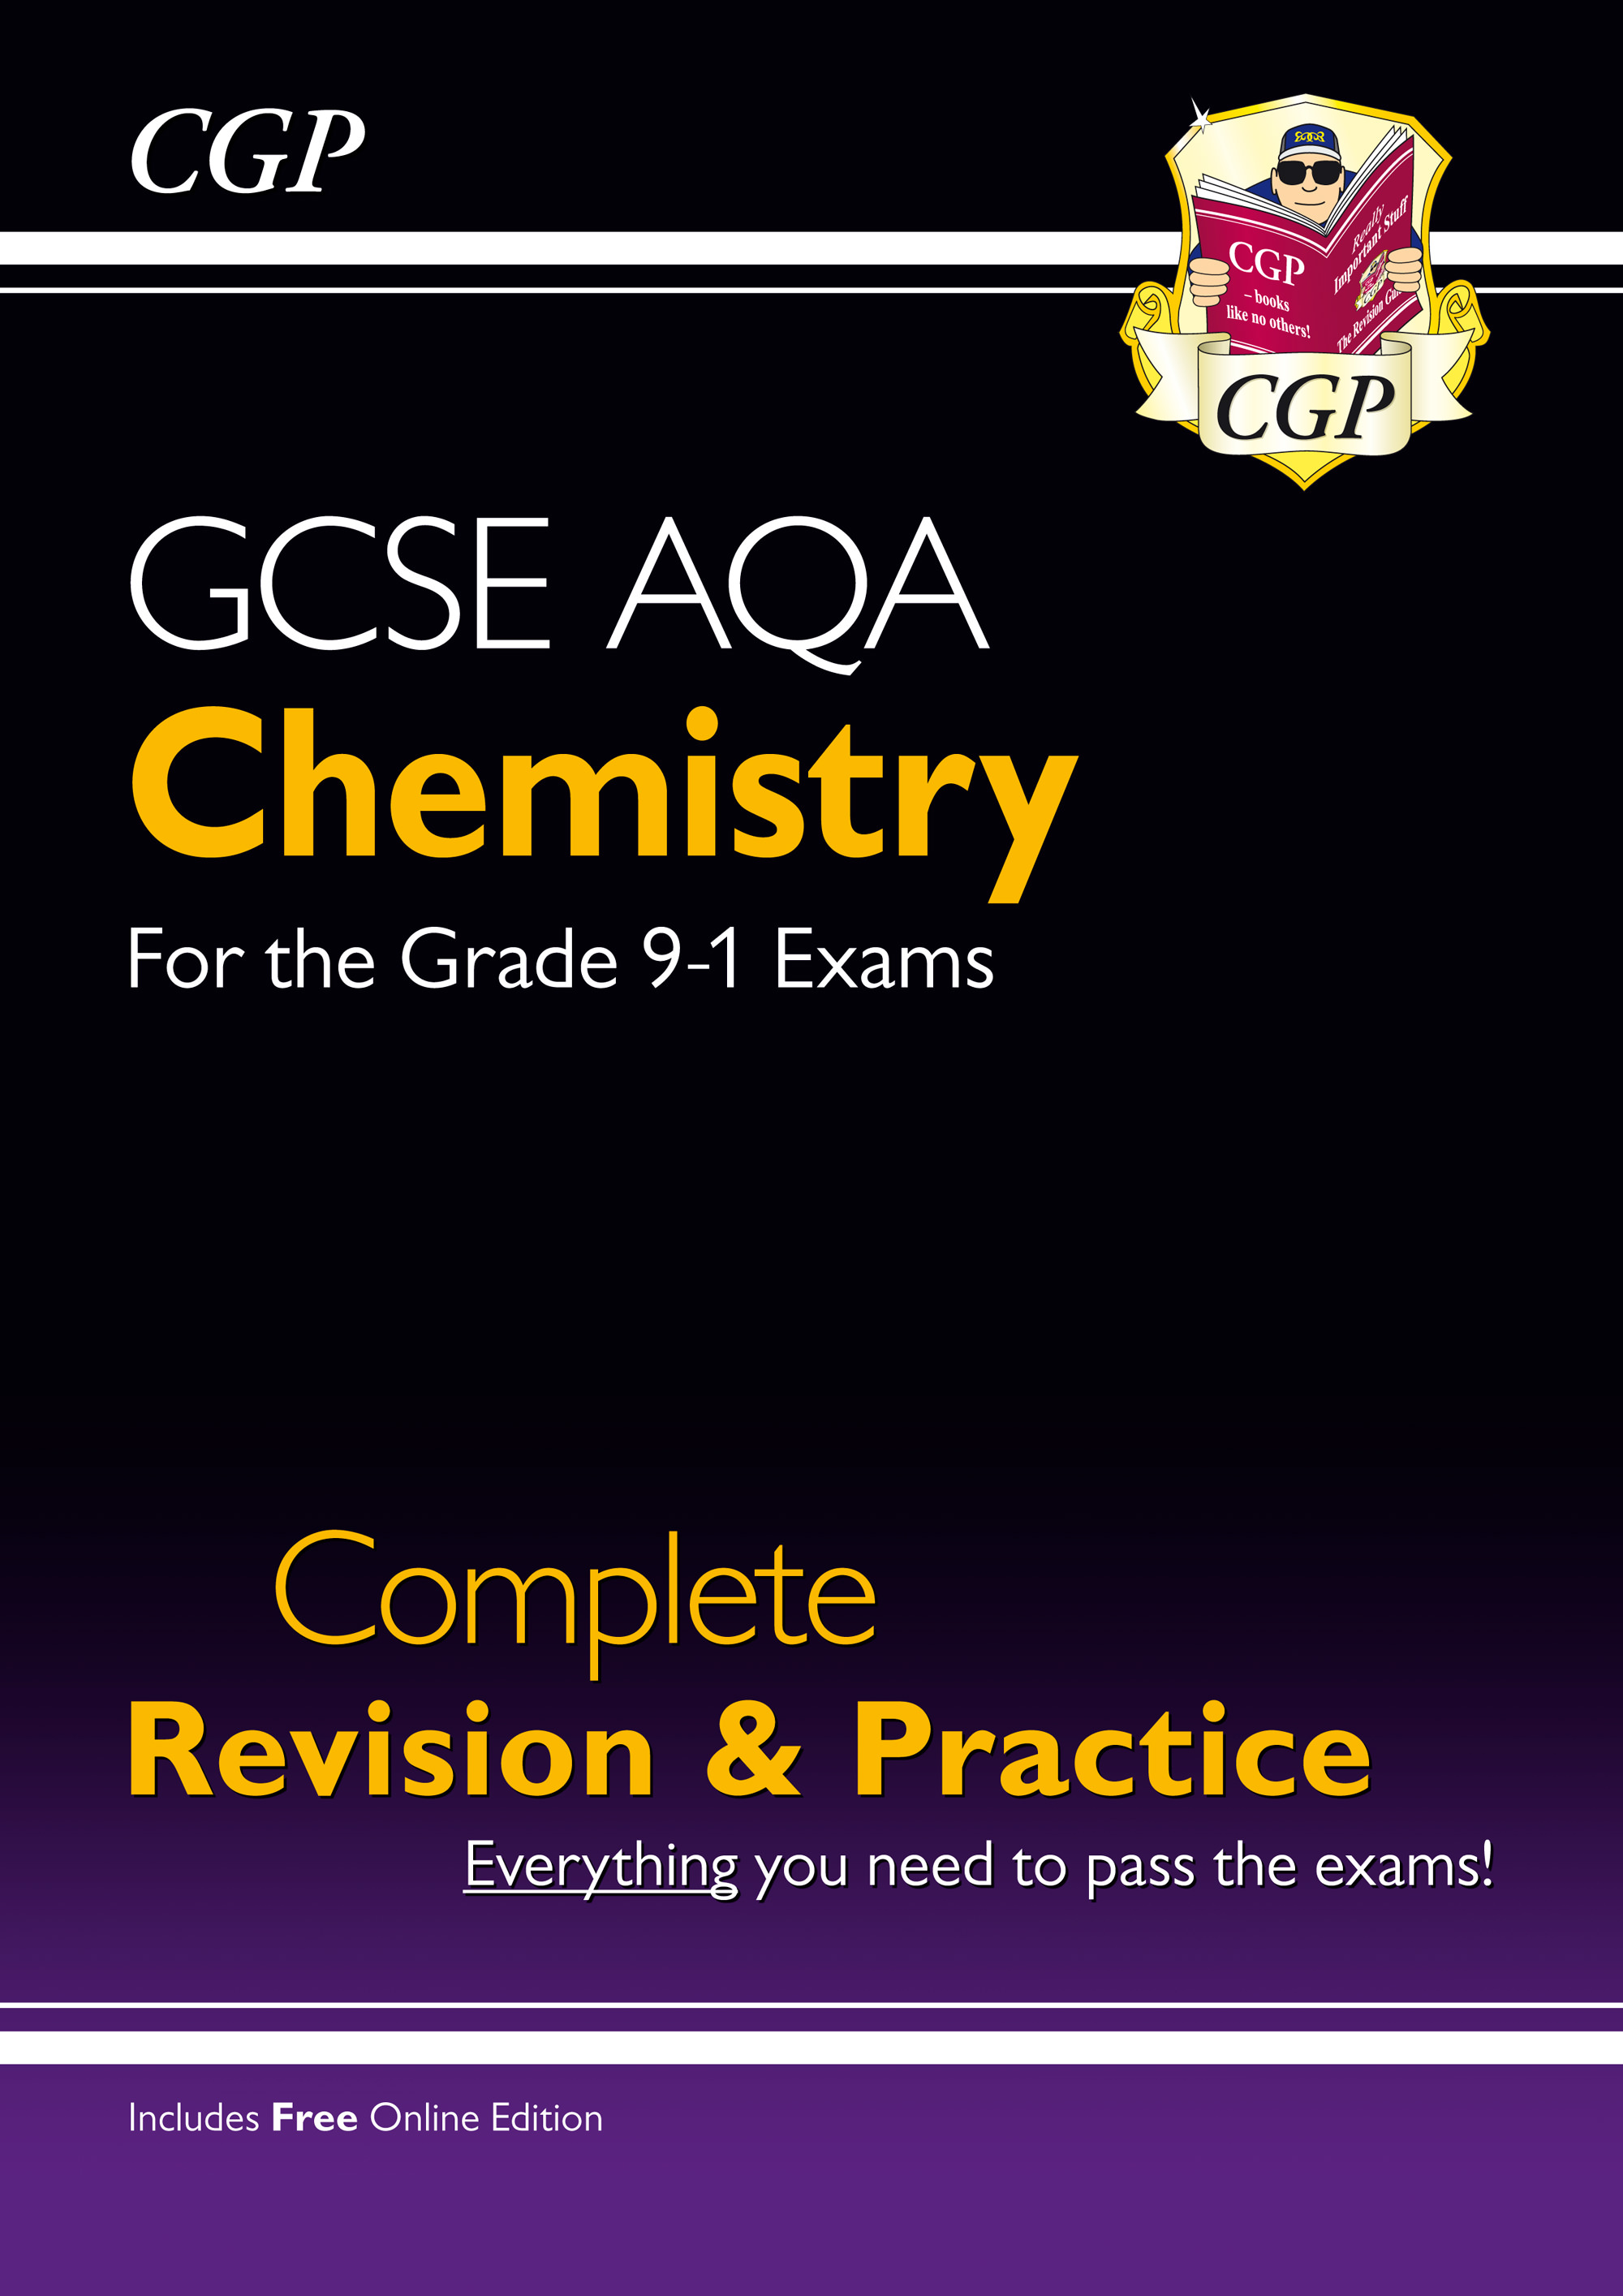 CAS45 - Grade 9-1 GCSE Chemistry AQA Complete Revision & Practice with Online Edition